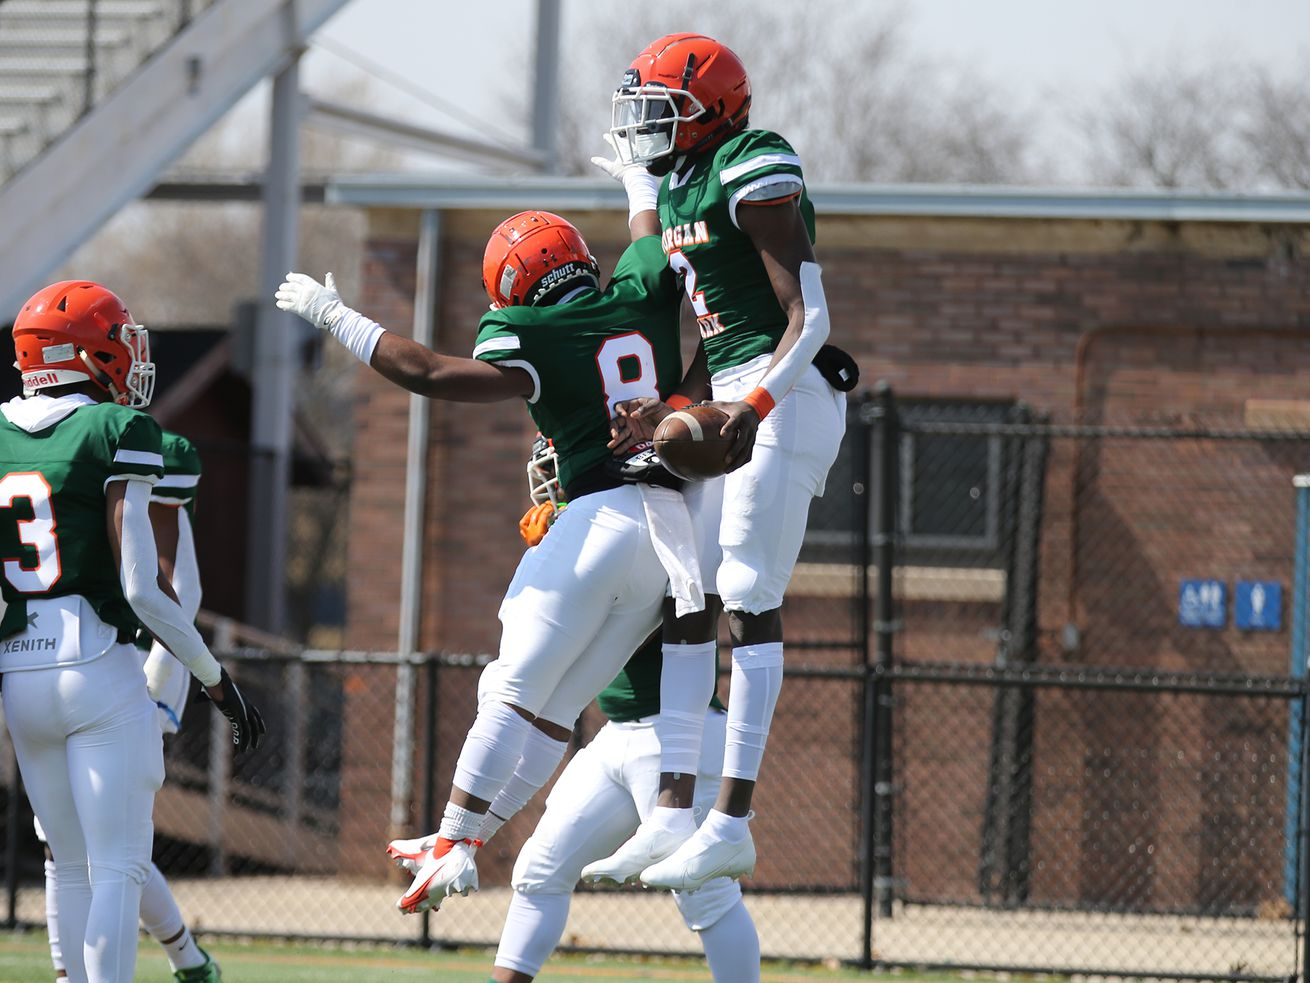 Morgan Park's Aaron Warren (2) celebrates with Jayquawne Hayes (8) after scoring a touchdown against Curie.